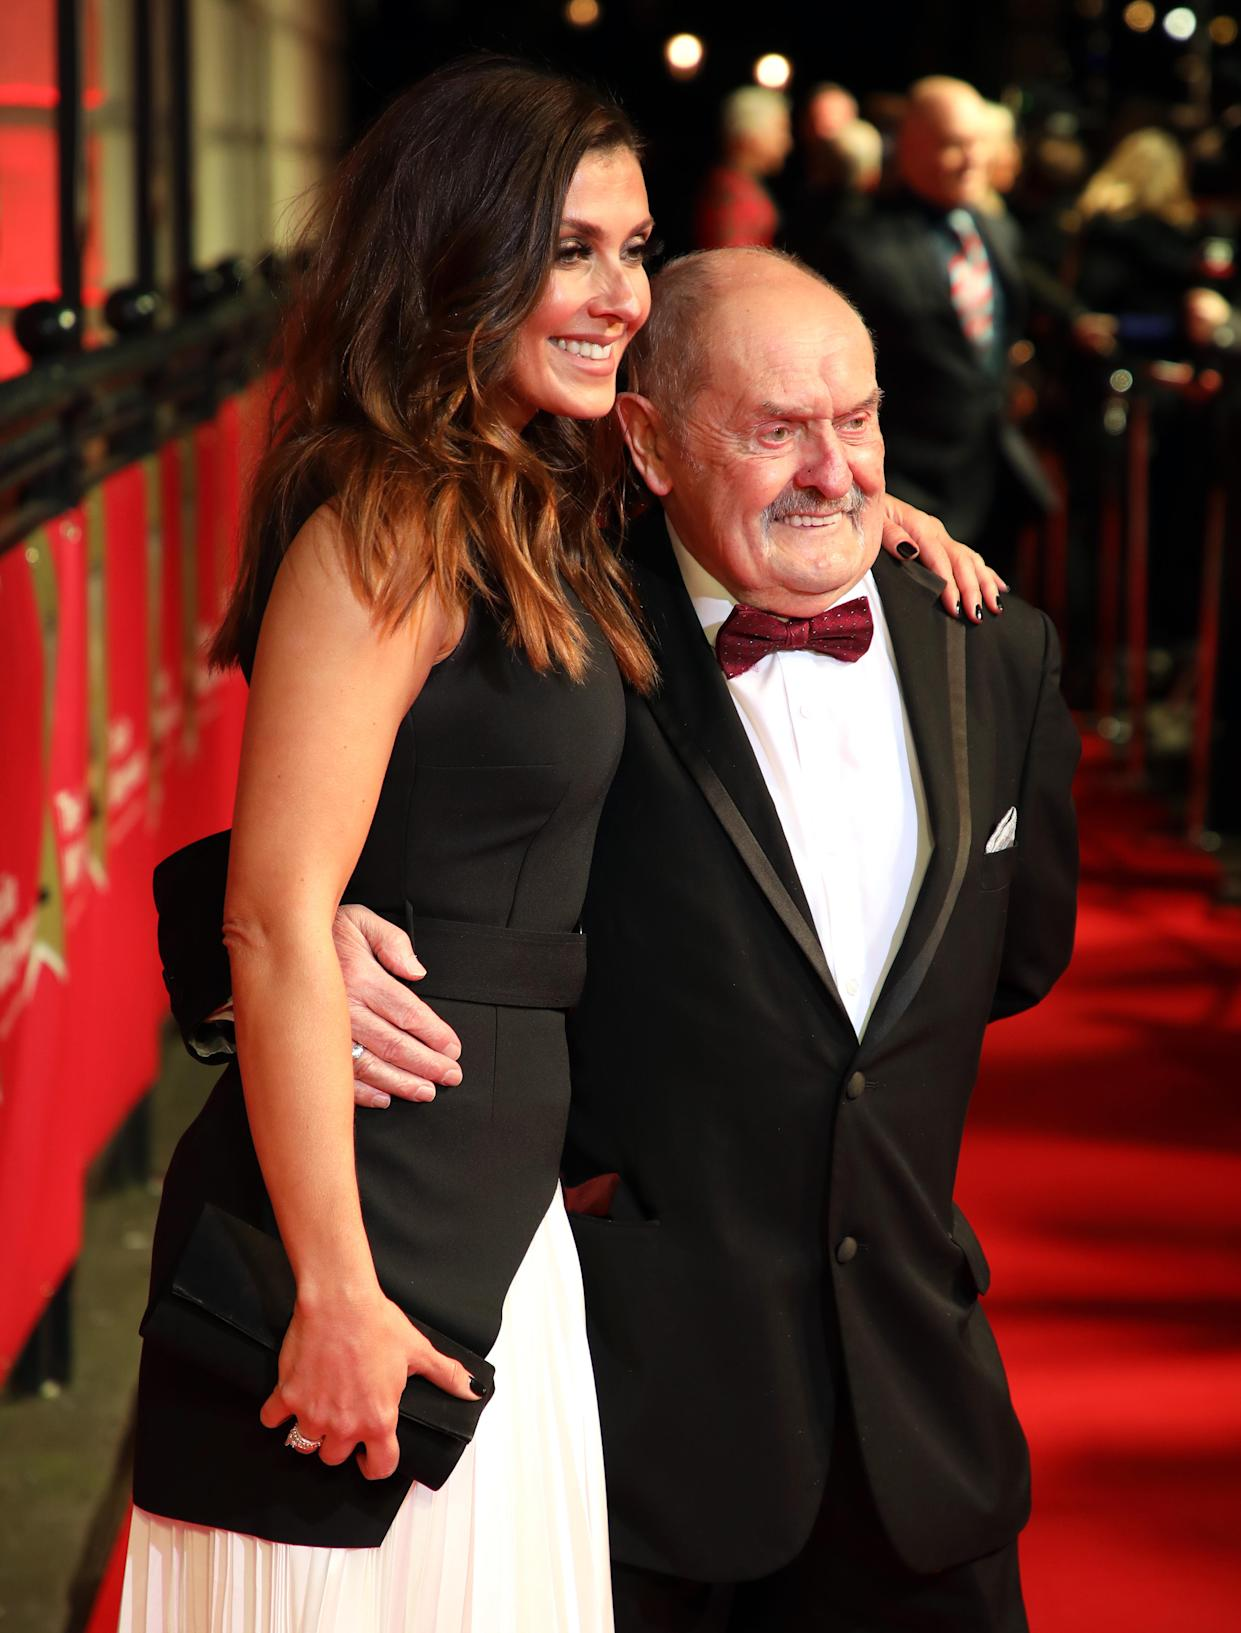 Kym Marsh and David Marsh attending The Sun Military Awards 2020 held at the Banqueting House, London. (Photo by David Parry/PA Images via Getty Images)